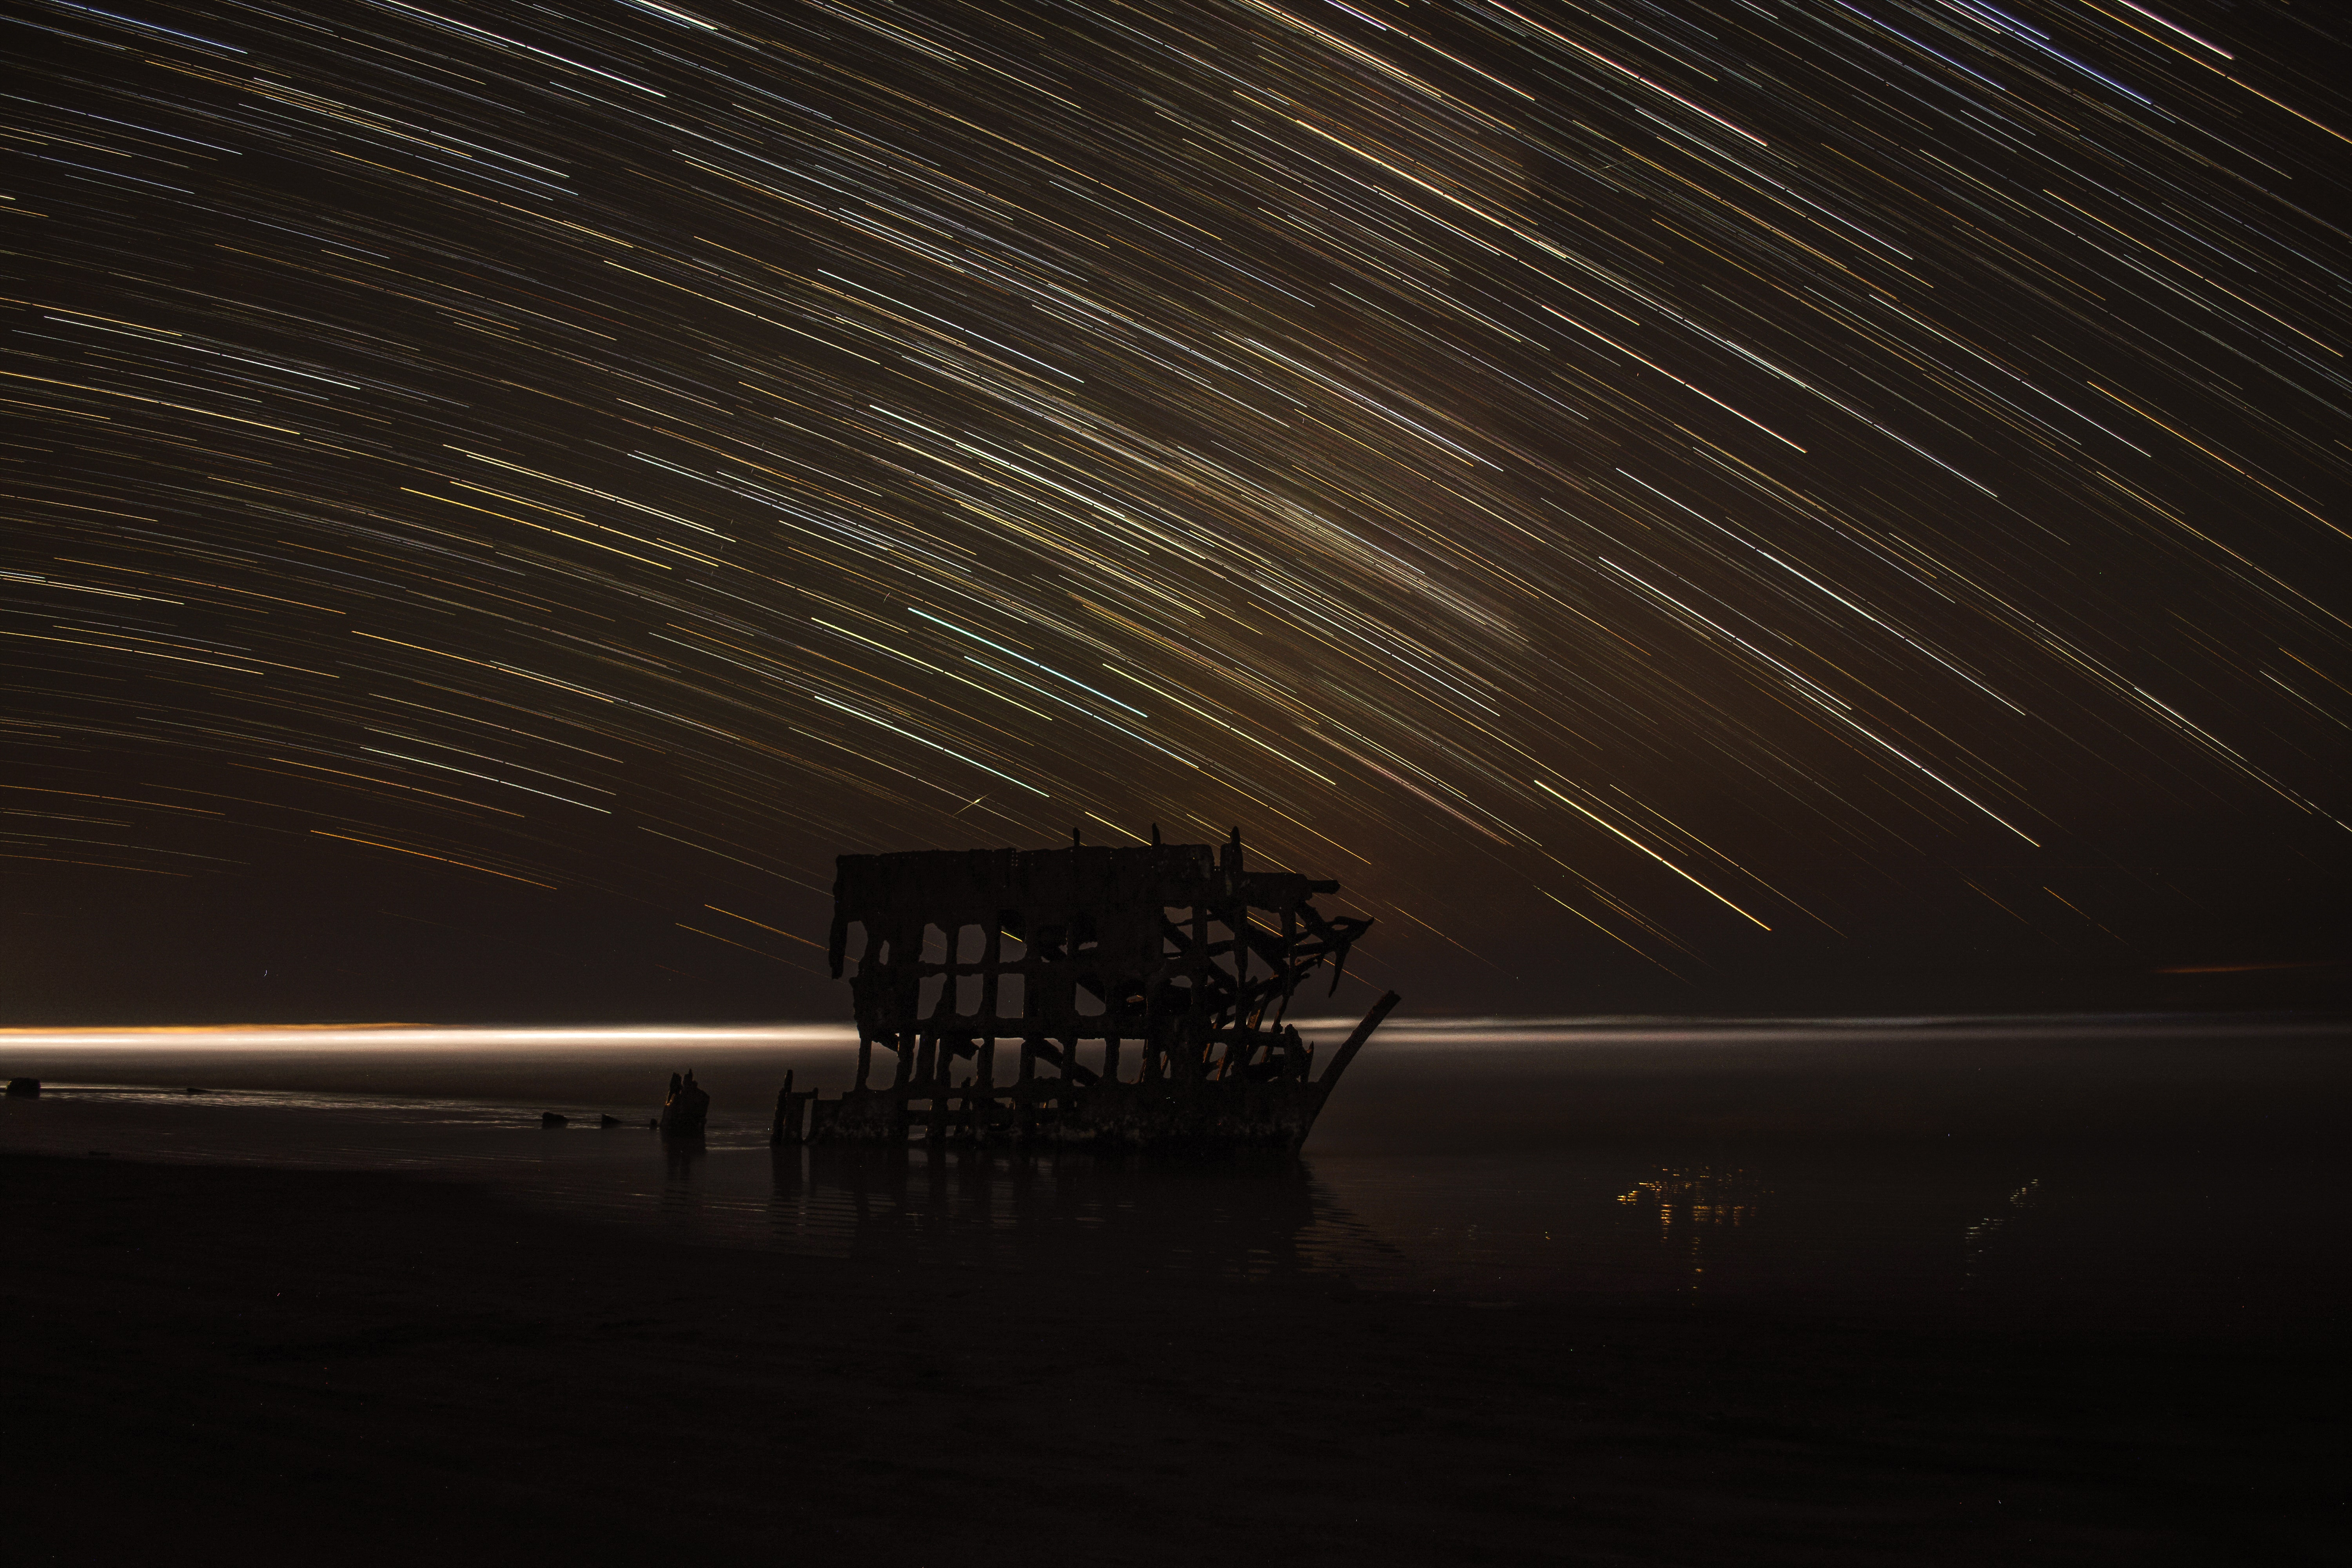 time lapse photography of house with shooting star at night time